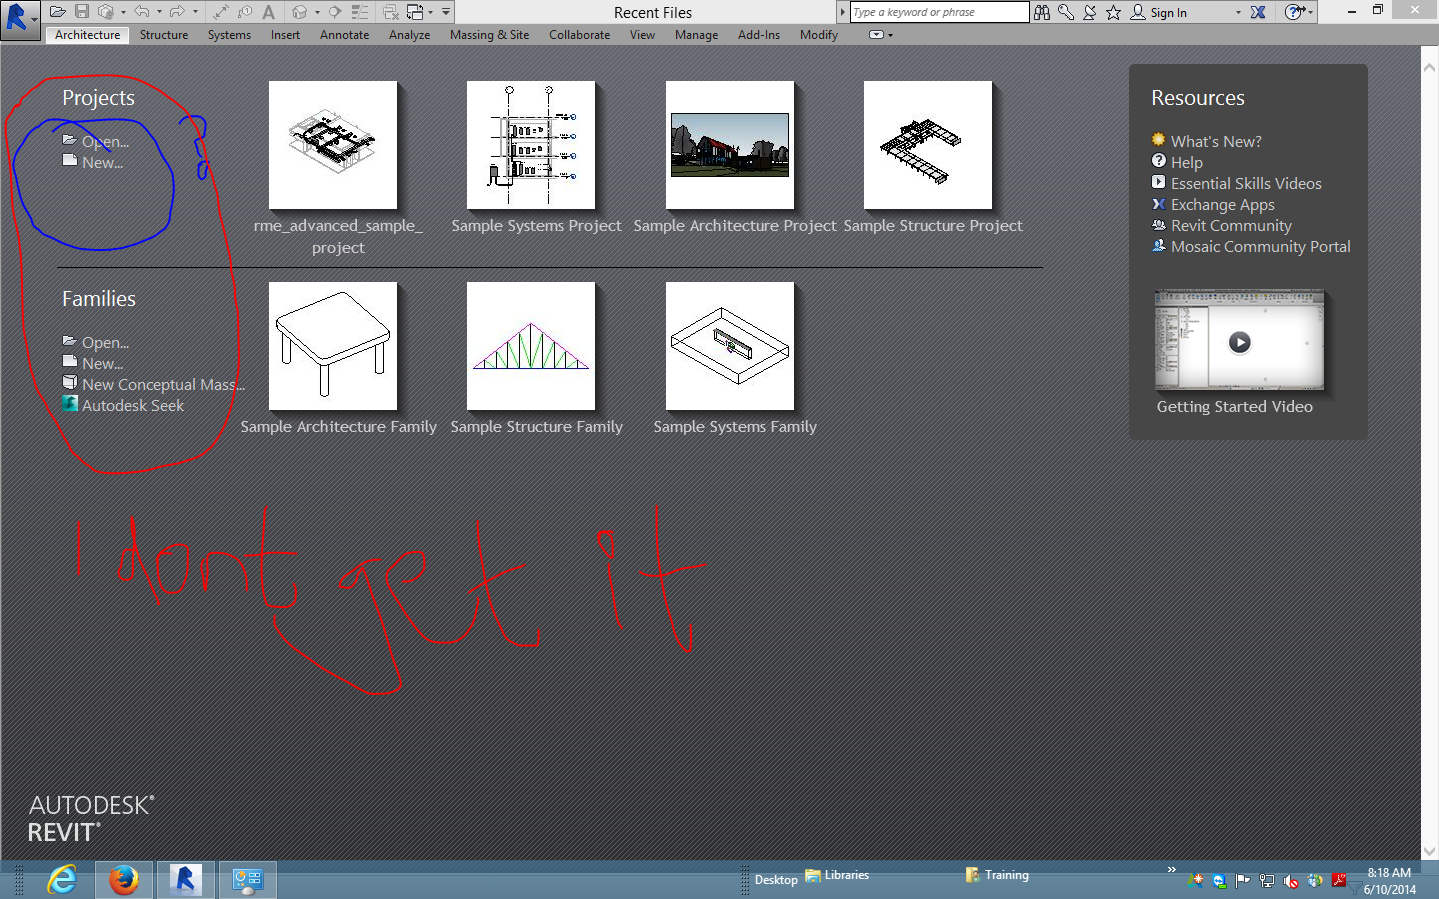 Solved: Revit 2015 Has No Architectural,Structural or Mechanical ...